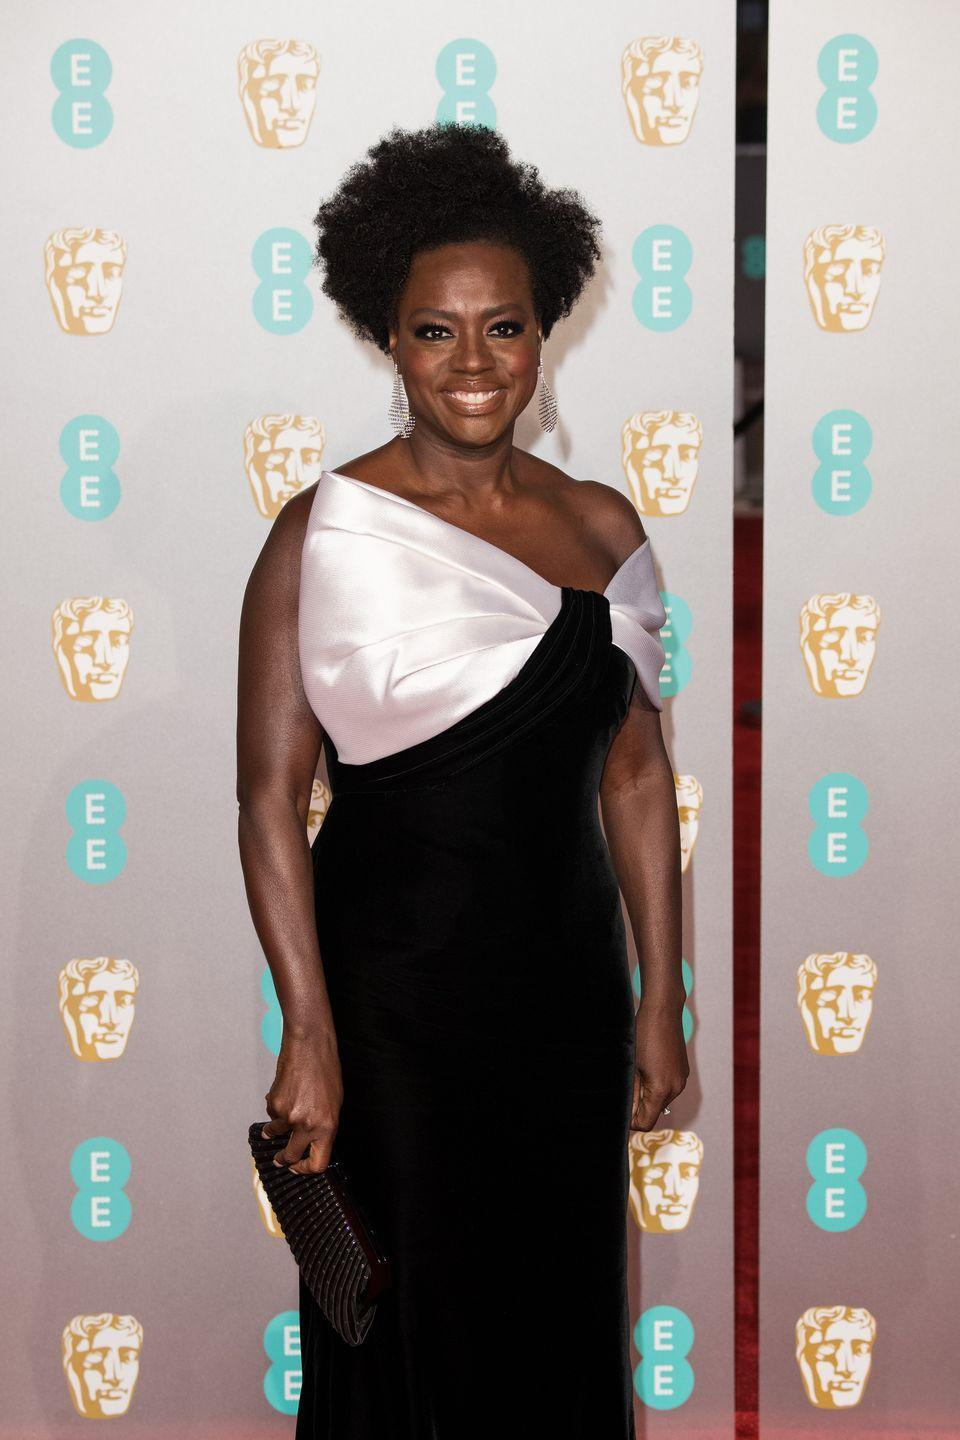 <p>If you want your curls to shine once they're short, ask for layers—and a lot of them. This gives each section its own space, so you have volume instead of short, but heavy hair. The style is seen here on Viola Davis.</p>